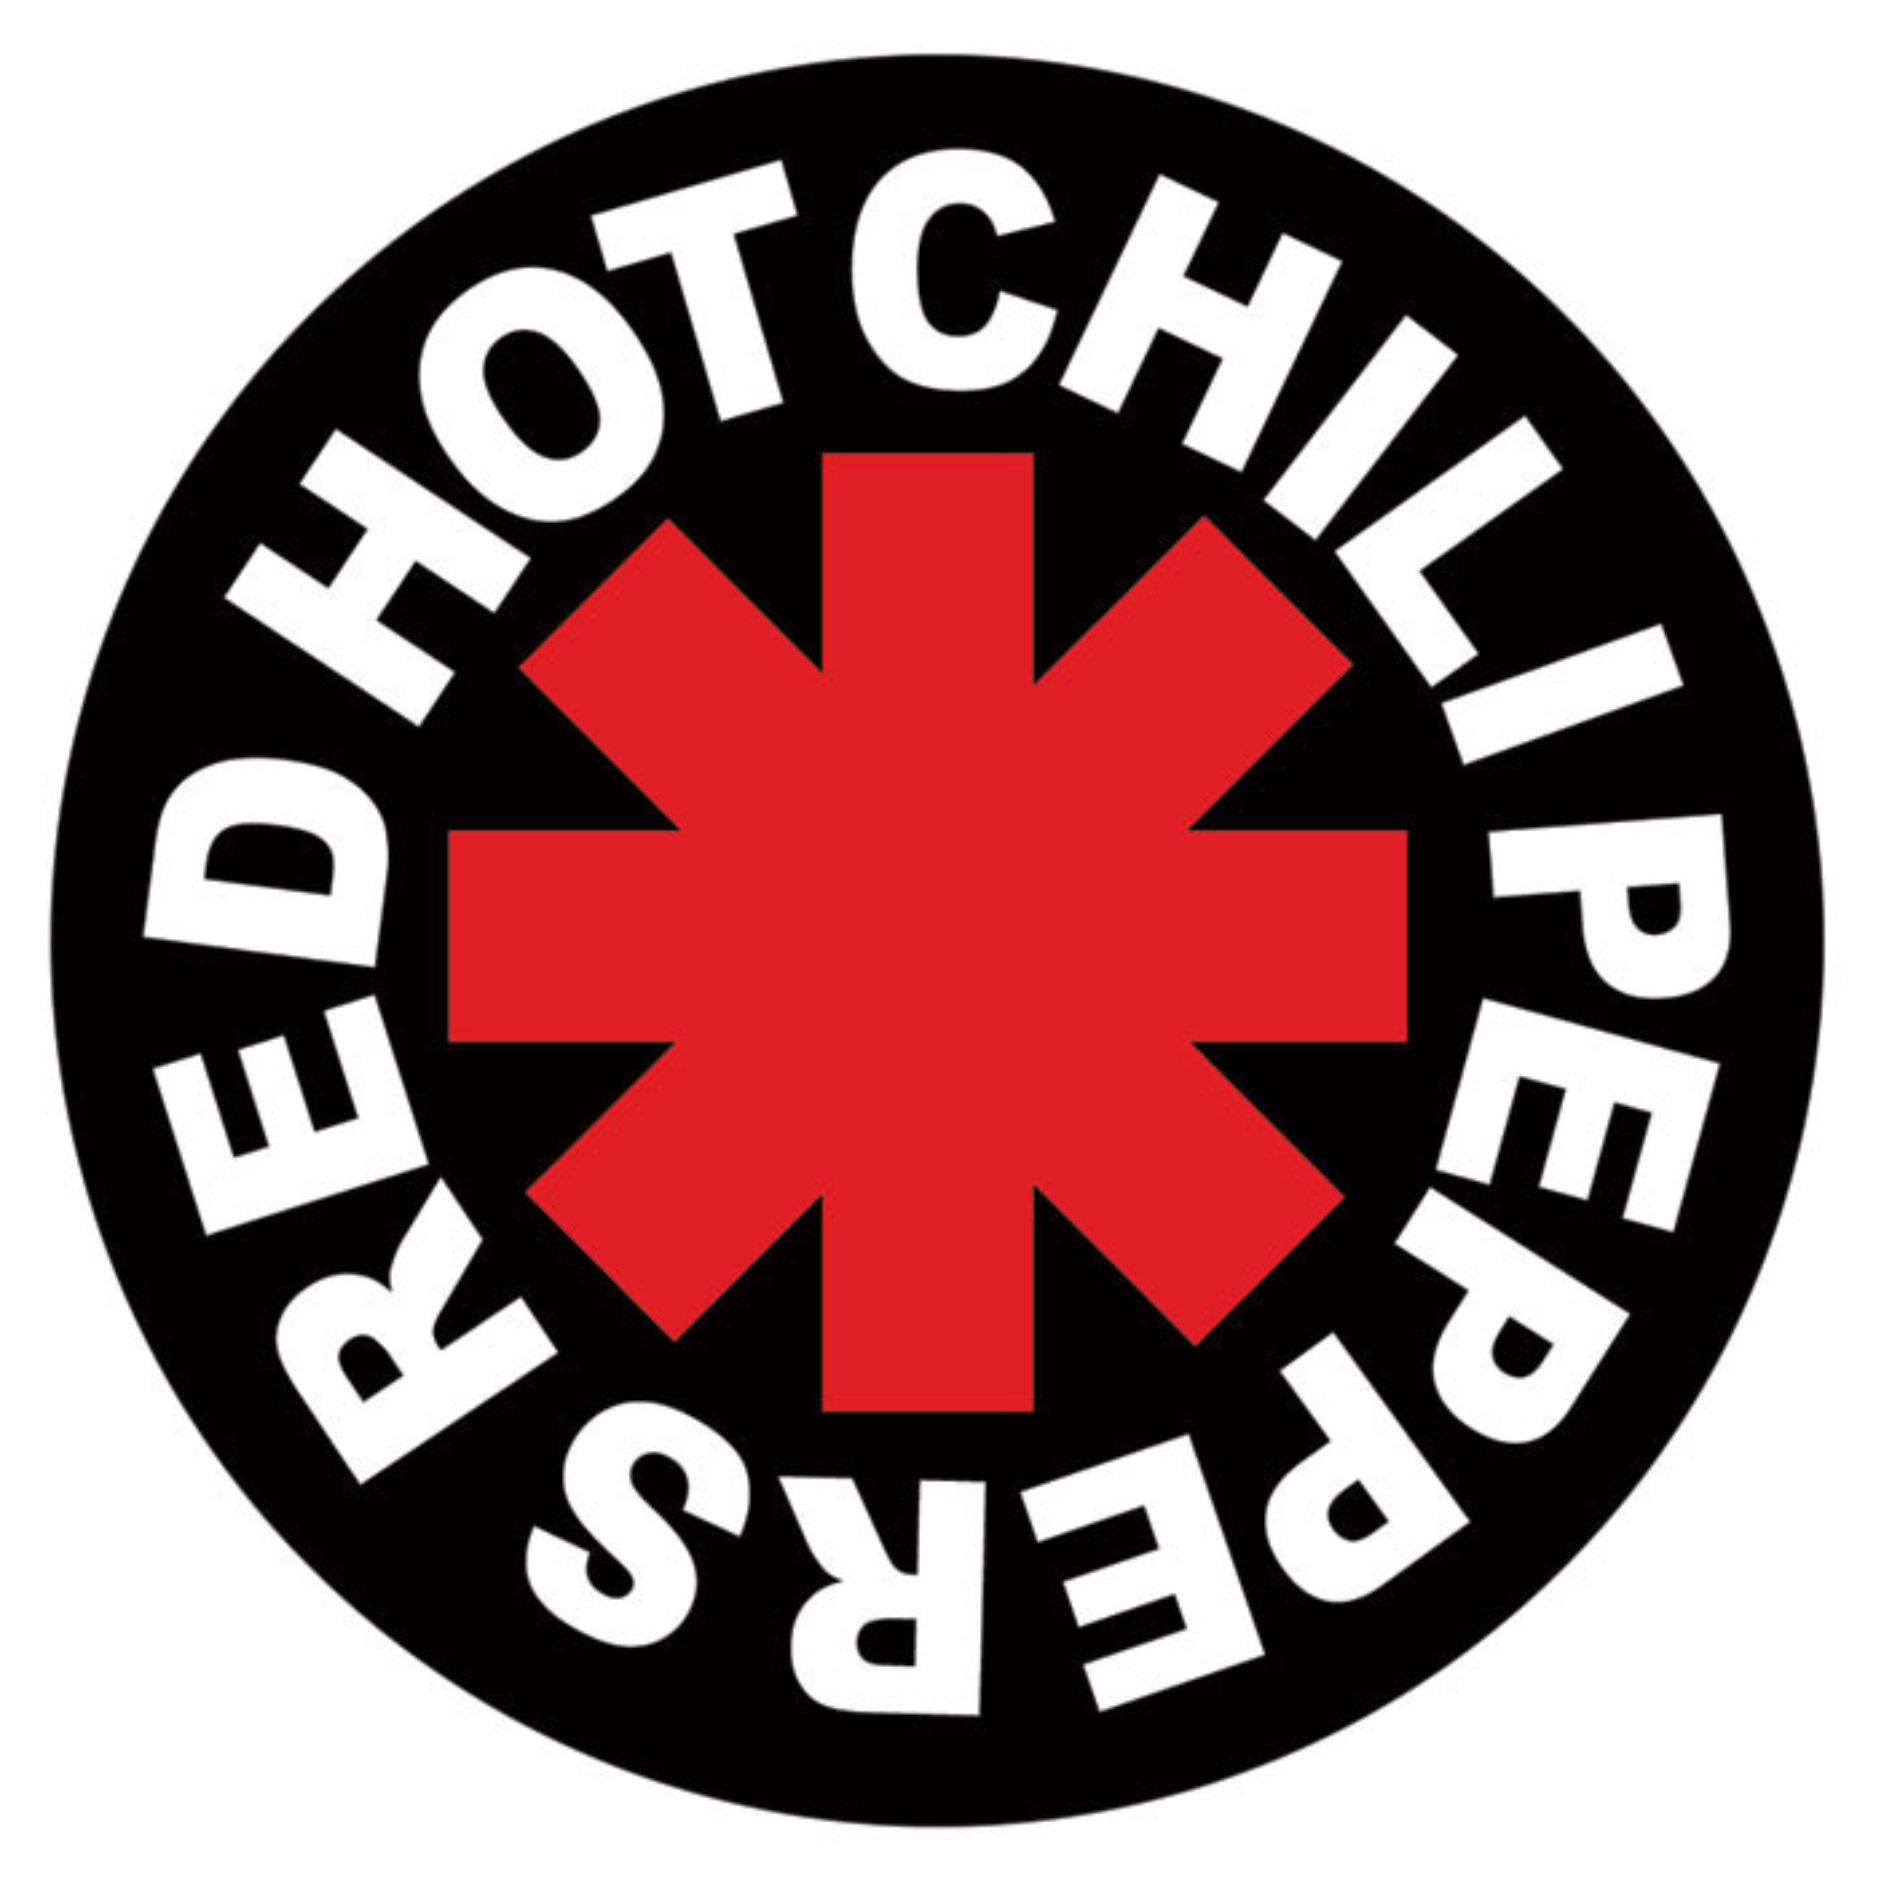 Red Hot Chili Peppers – neues Album in Planung?